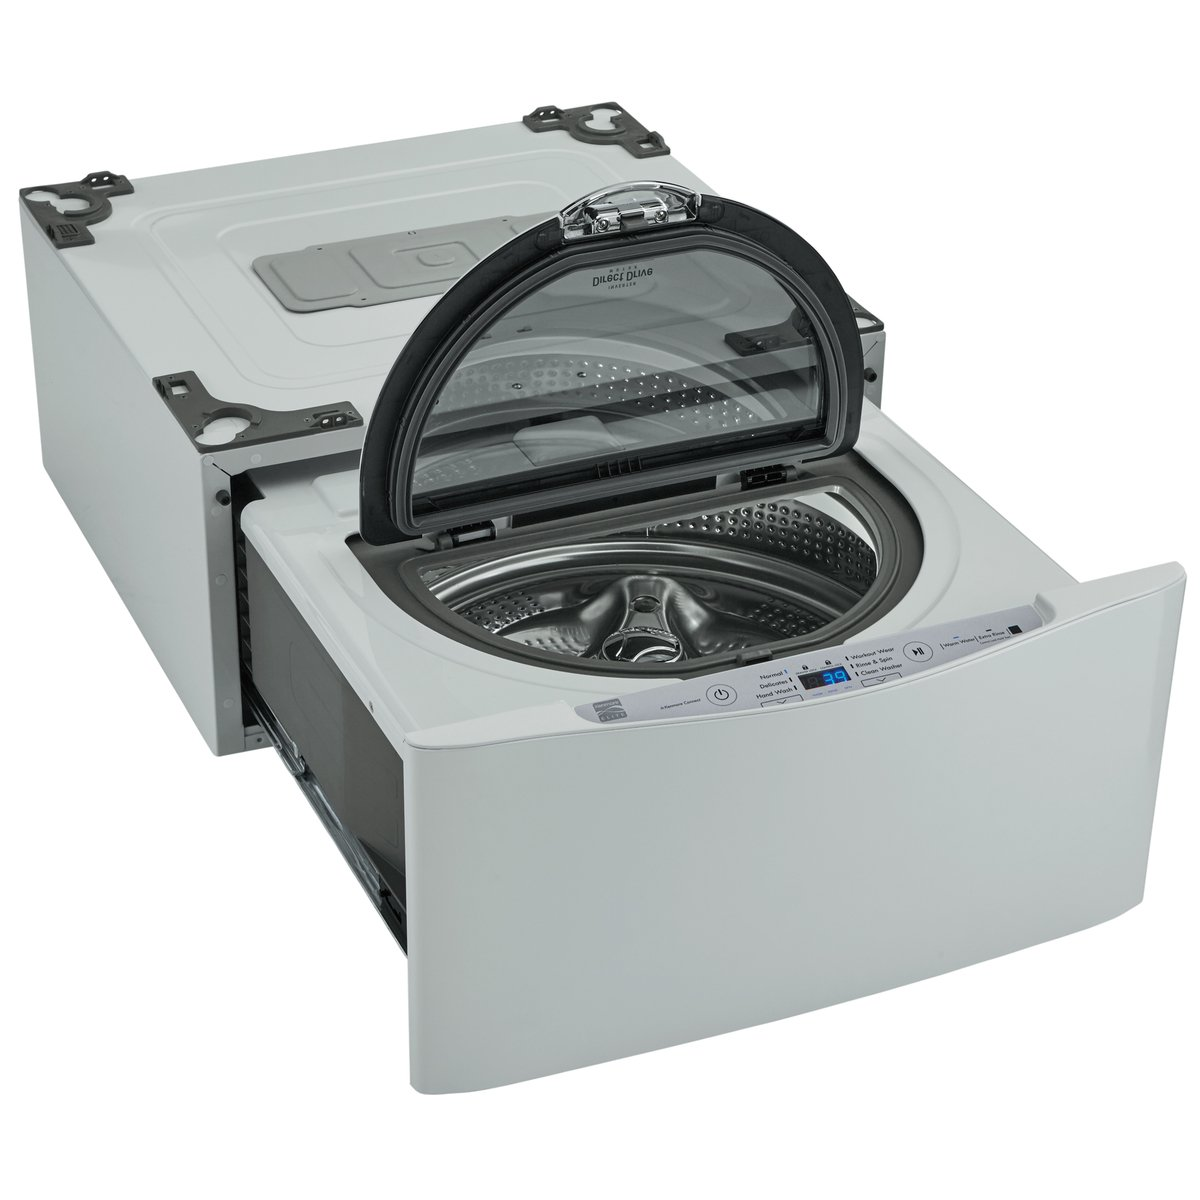 Kenmore Elite 51972 27'' Wide Pedestal Washer in White, includes delivery and hookup